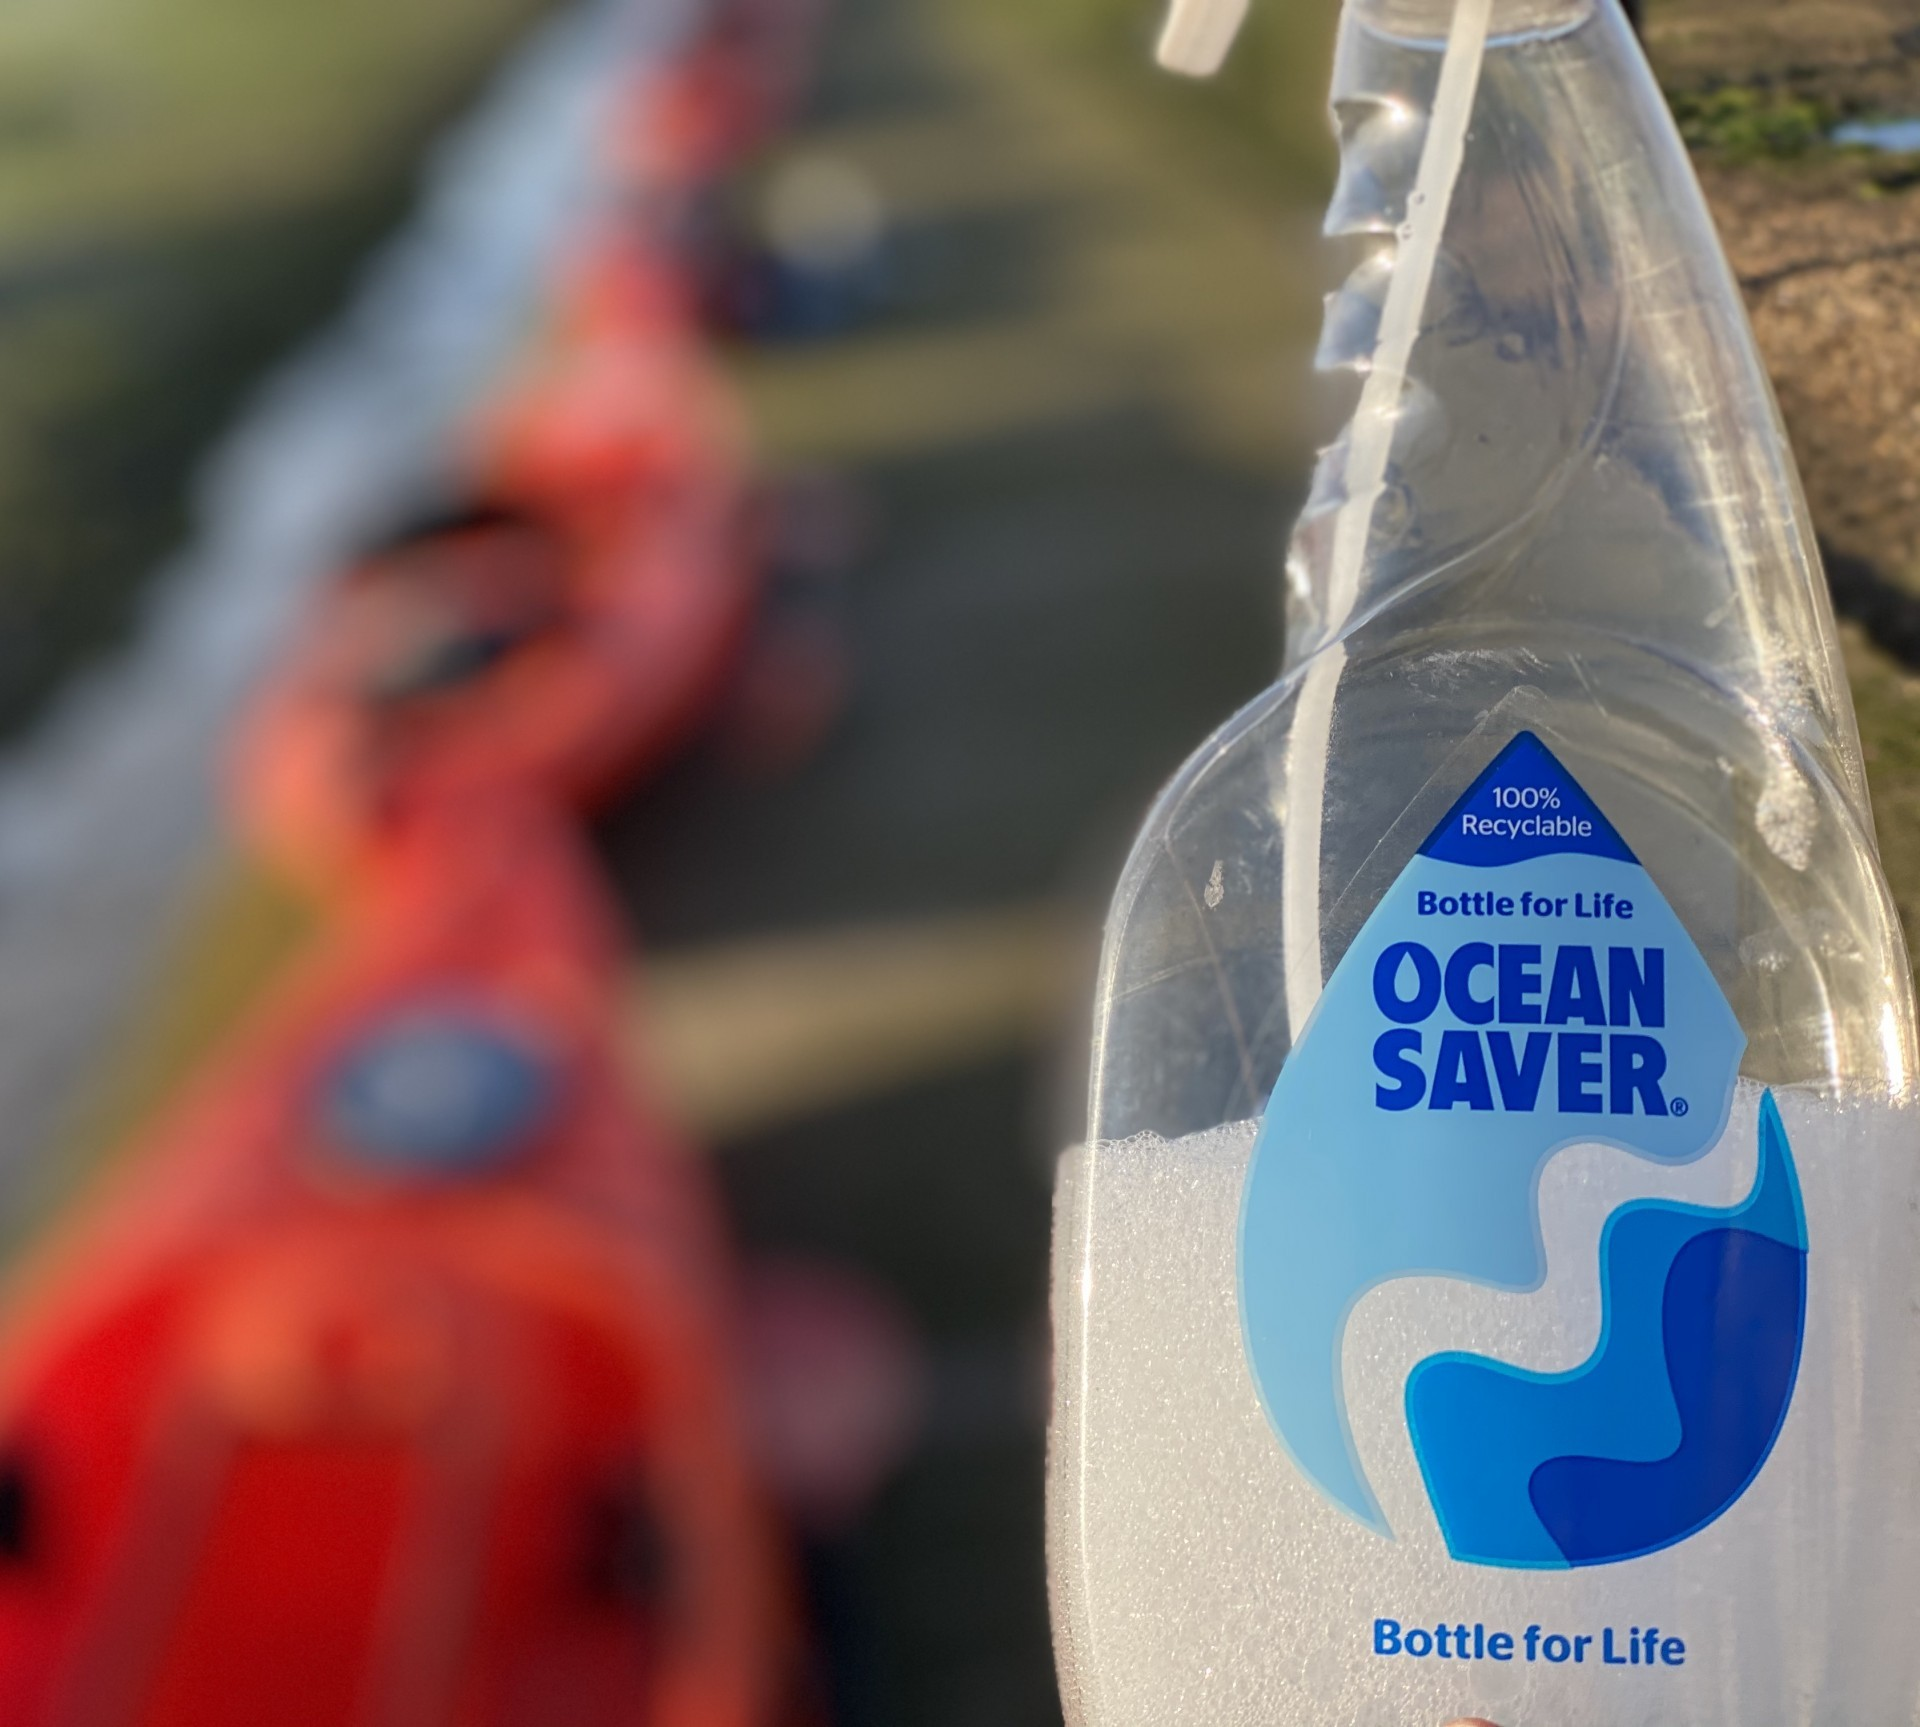 Ocean Saver marine safe disinfectant for COVID-19 cleaning protocols